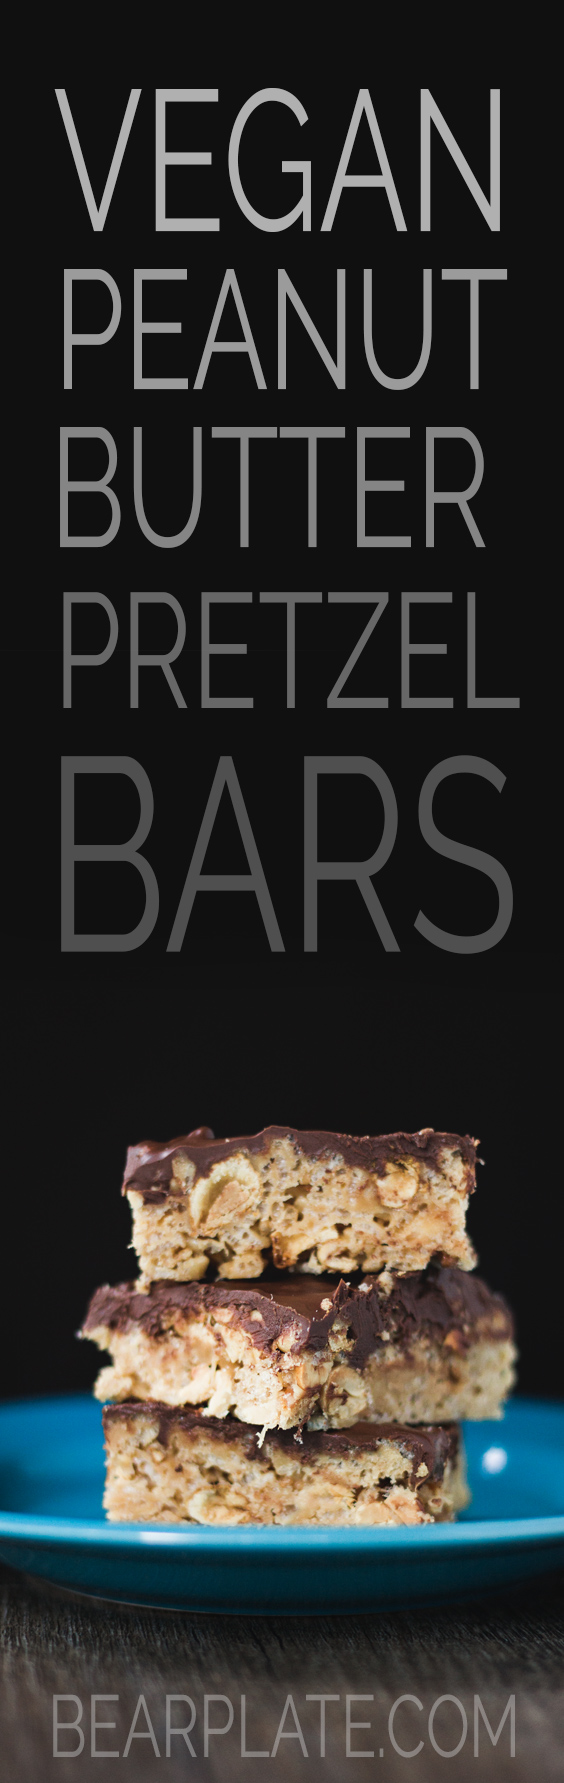 DELICIOUS Vegan Peanut Butter Pretzel Bars! Perfect for perfect for a game day snack! #vegan #dessert #superbowl #hiking #food #recipe